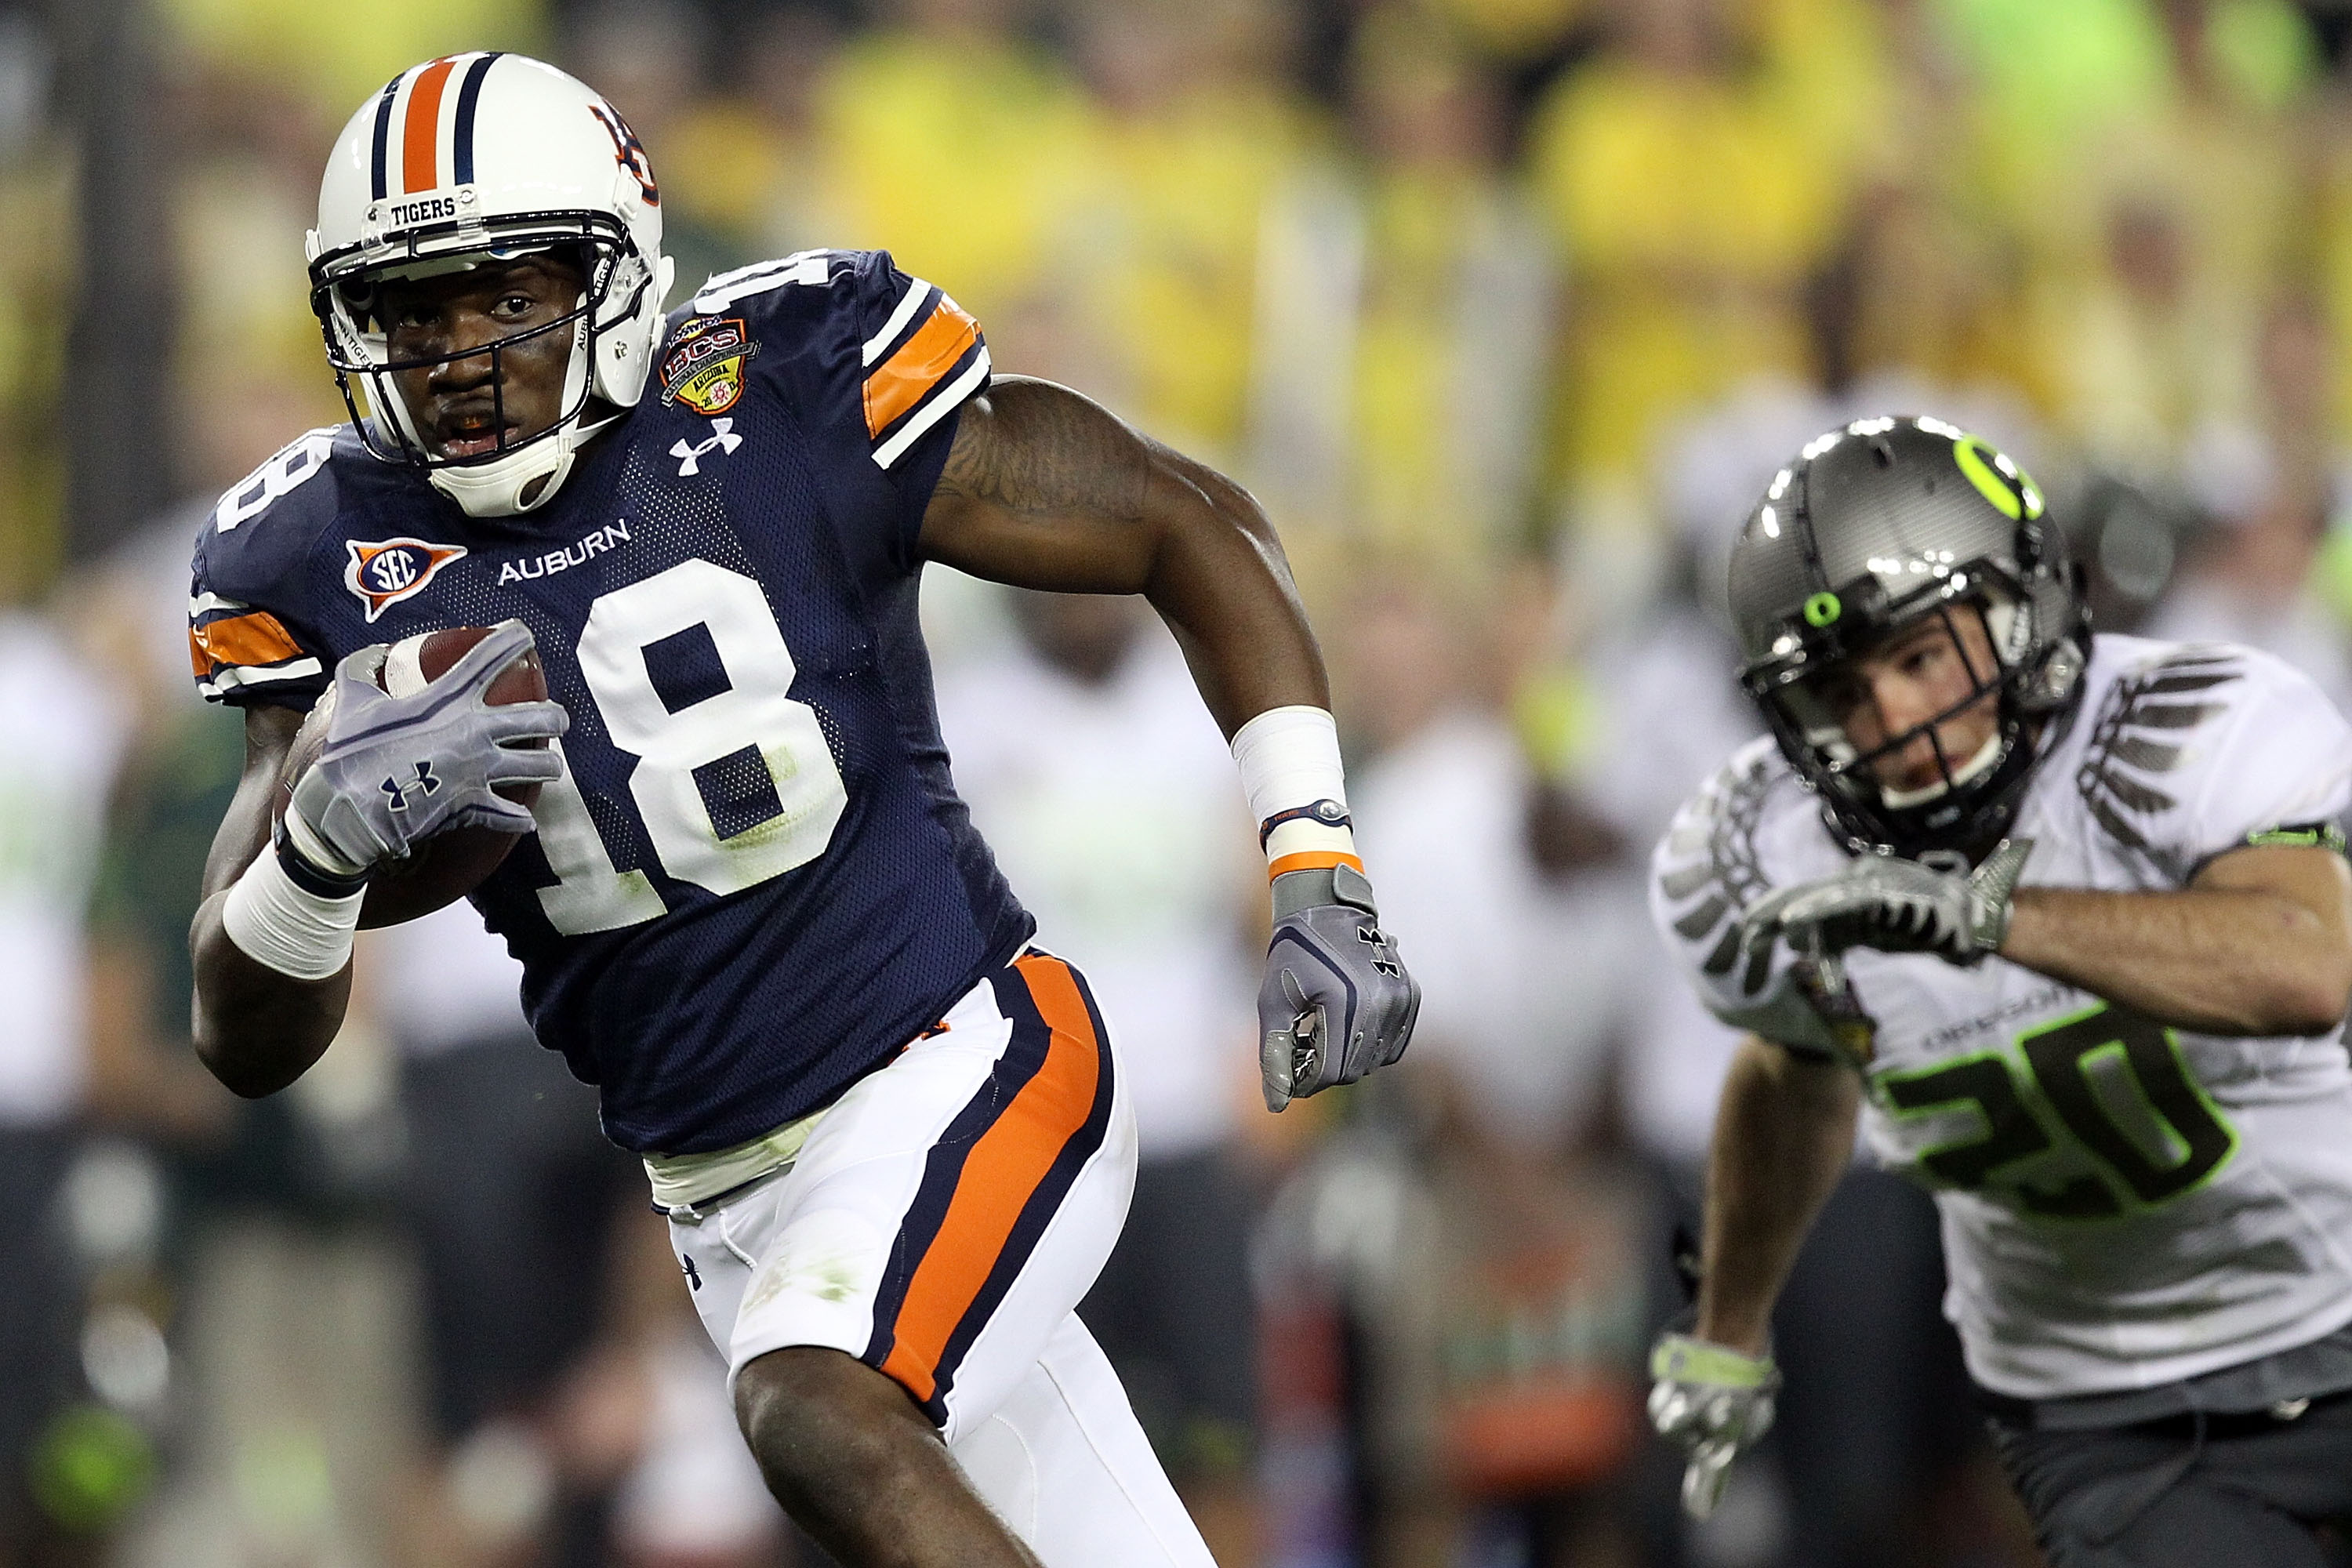 GLENDALE, AZ - JANUARY 10:  Kodi Burns #18 of the Auburn Tigers runs for a 35-yard touchdown against the Oregon Ducks during the Tostitos BCS National Championship Game at University of Phoenix Stadium on January 10, 2011 in Glendale, Arizona.  (Photo by